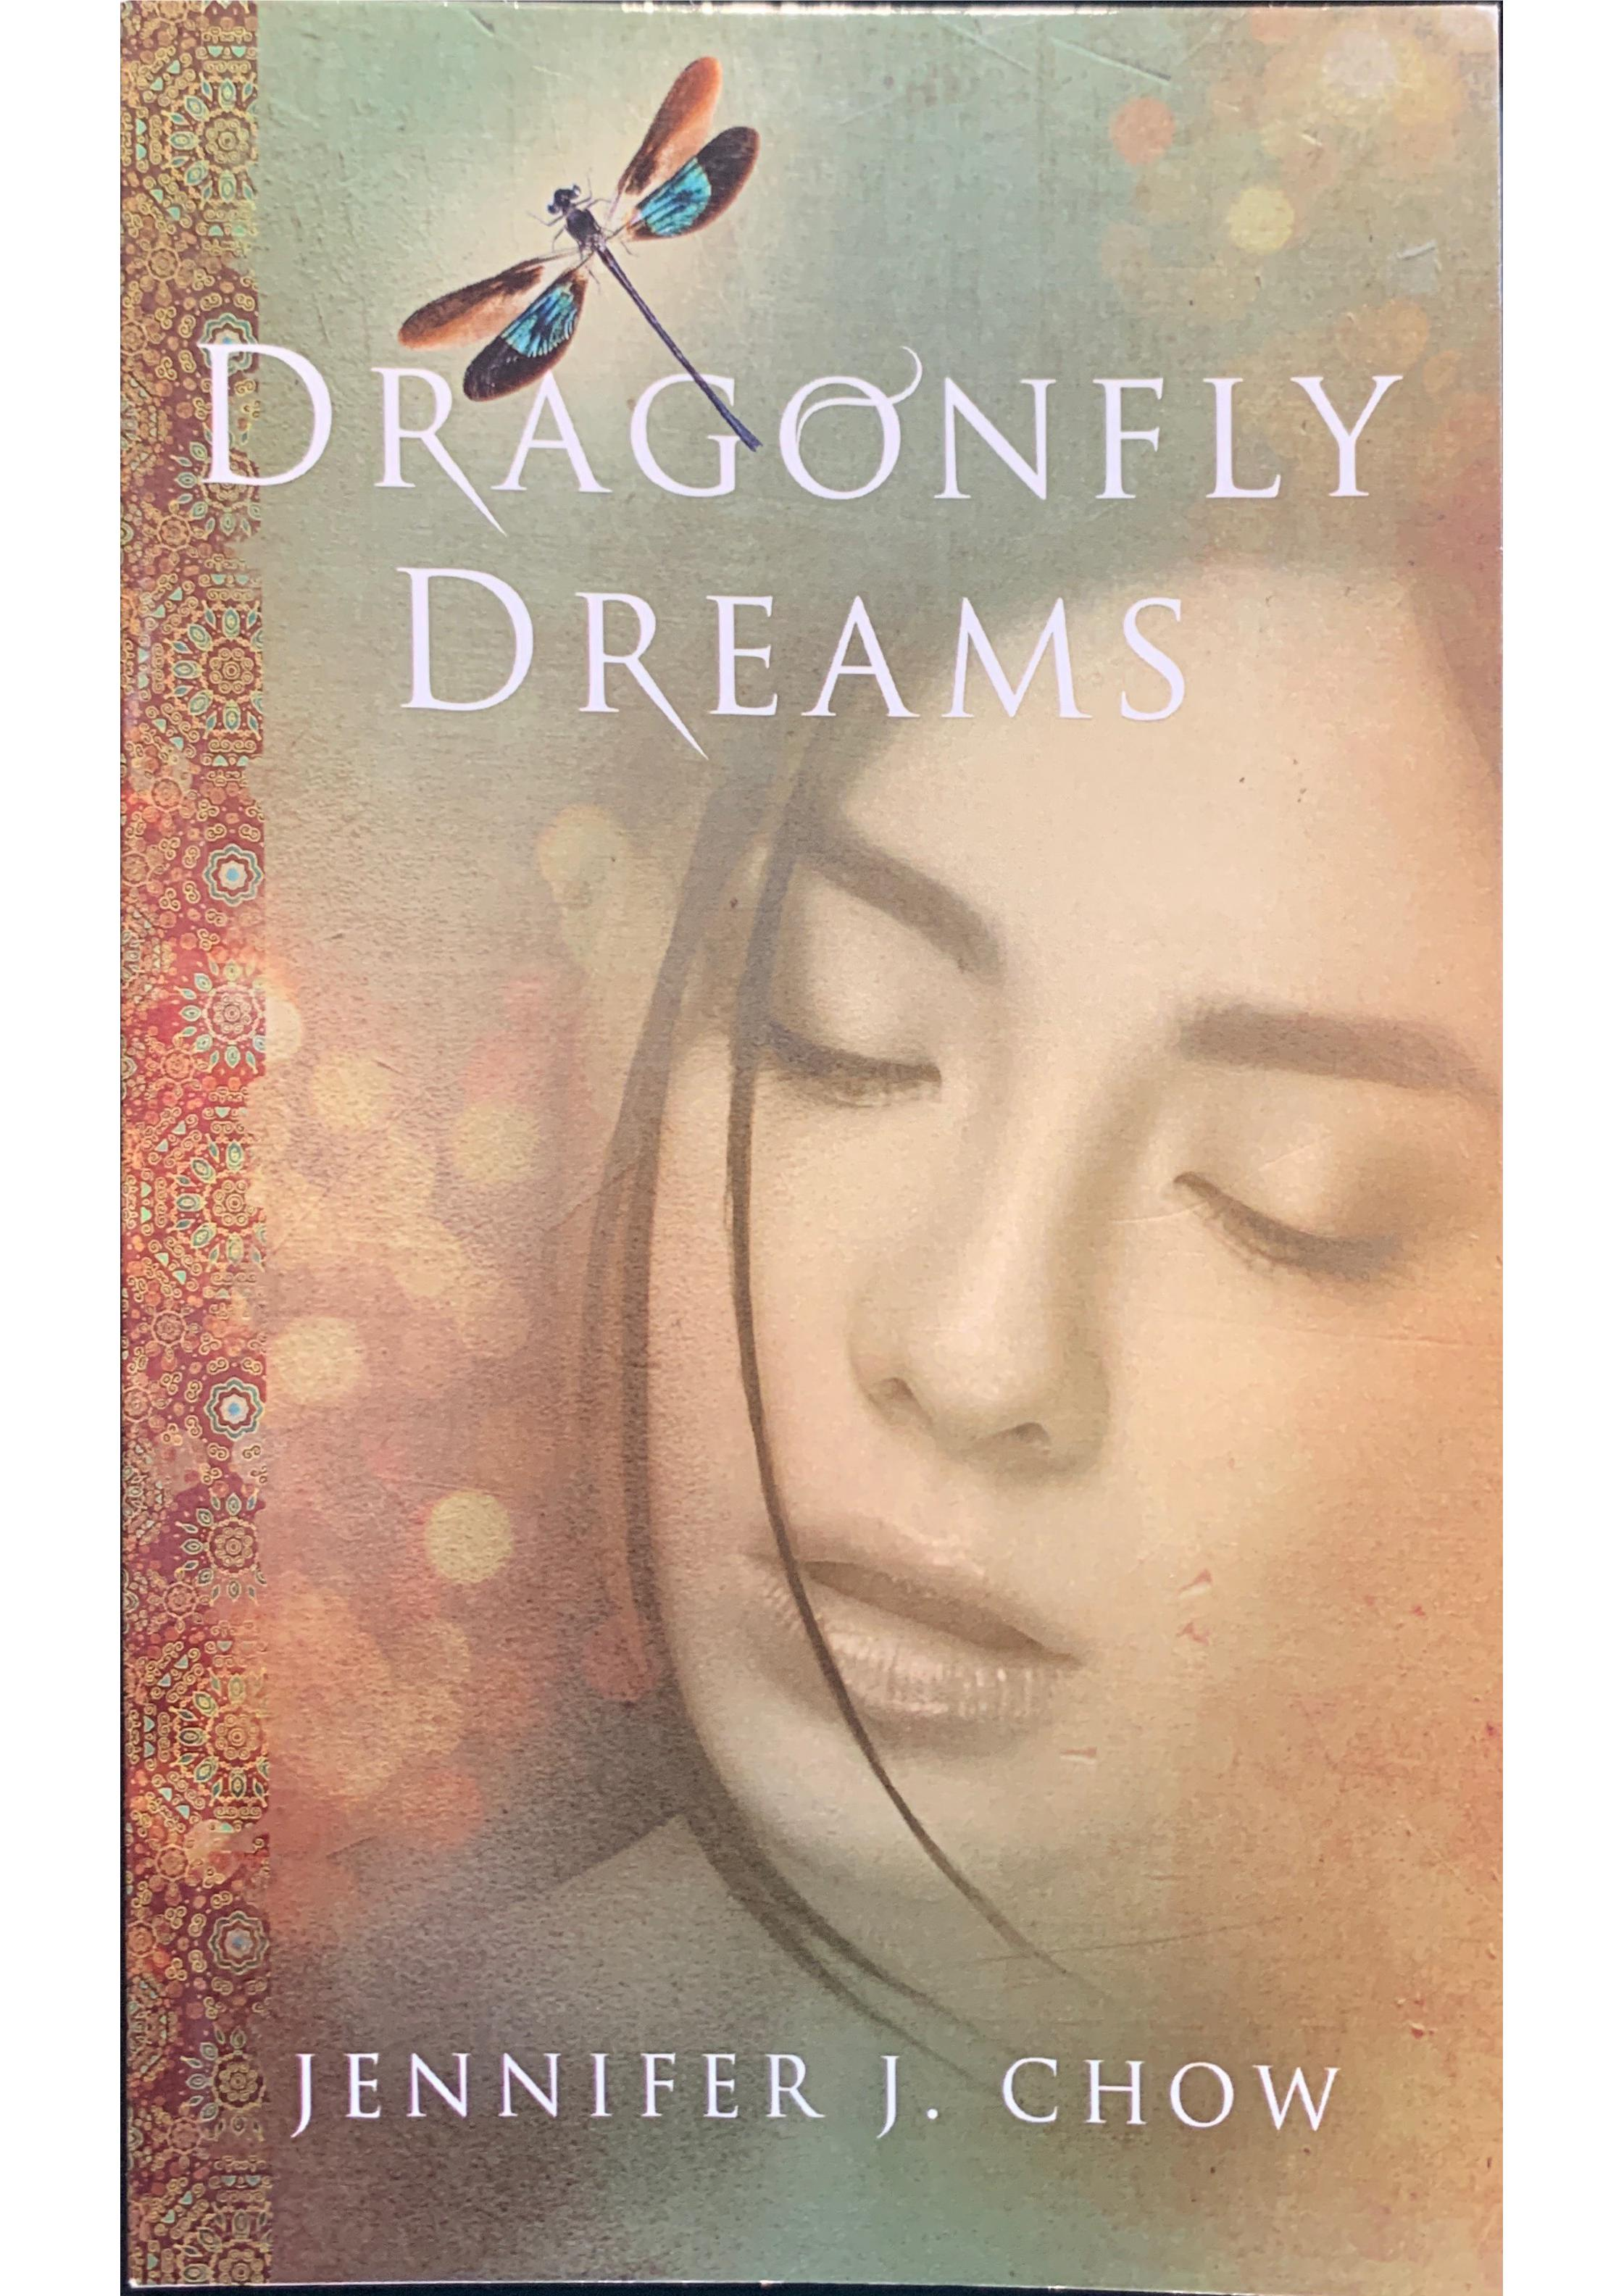 1323. Dragonfly Dreams/Jennifer J. Chow/2015